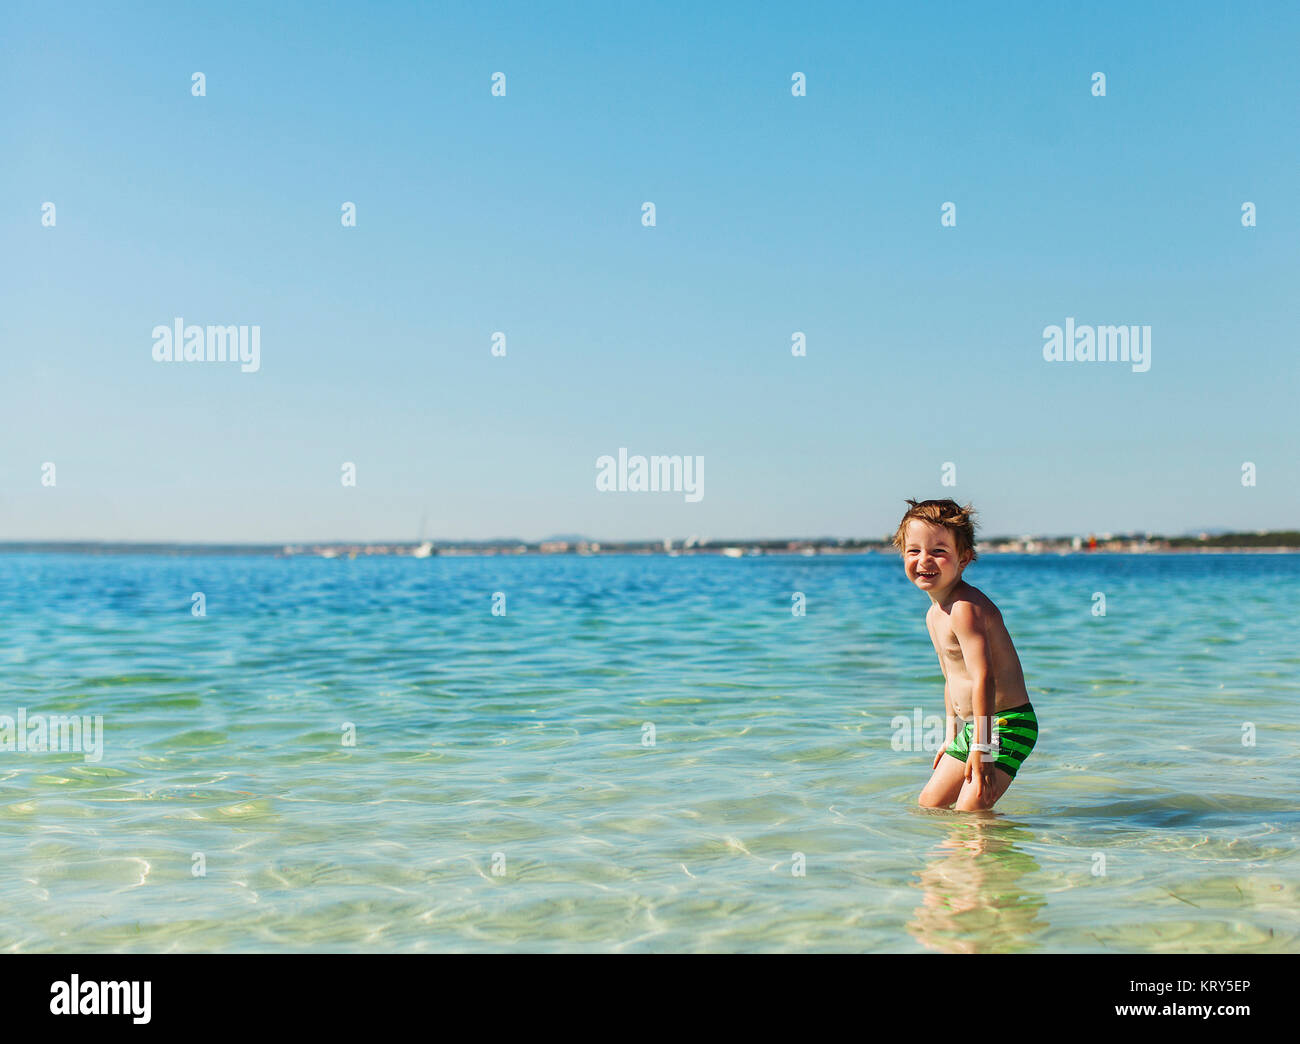 A young boy swimming in the sea - Stock Image